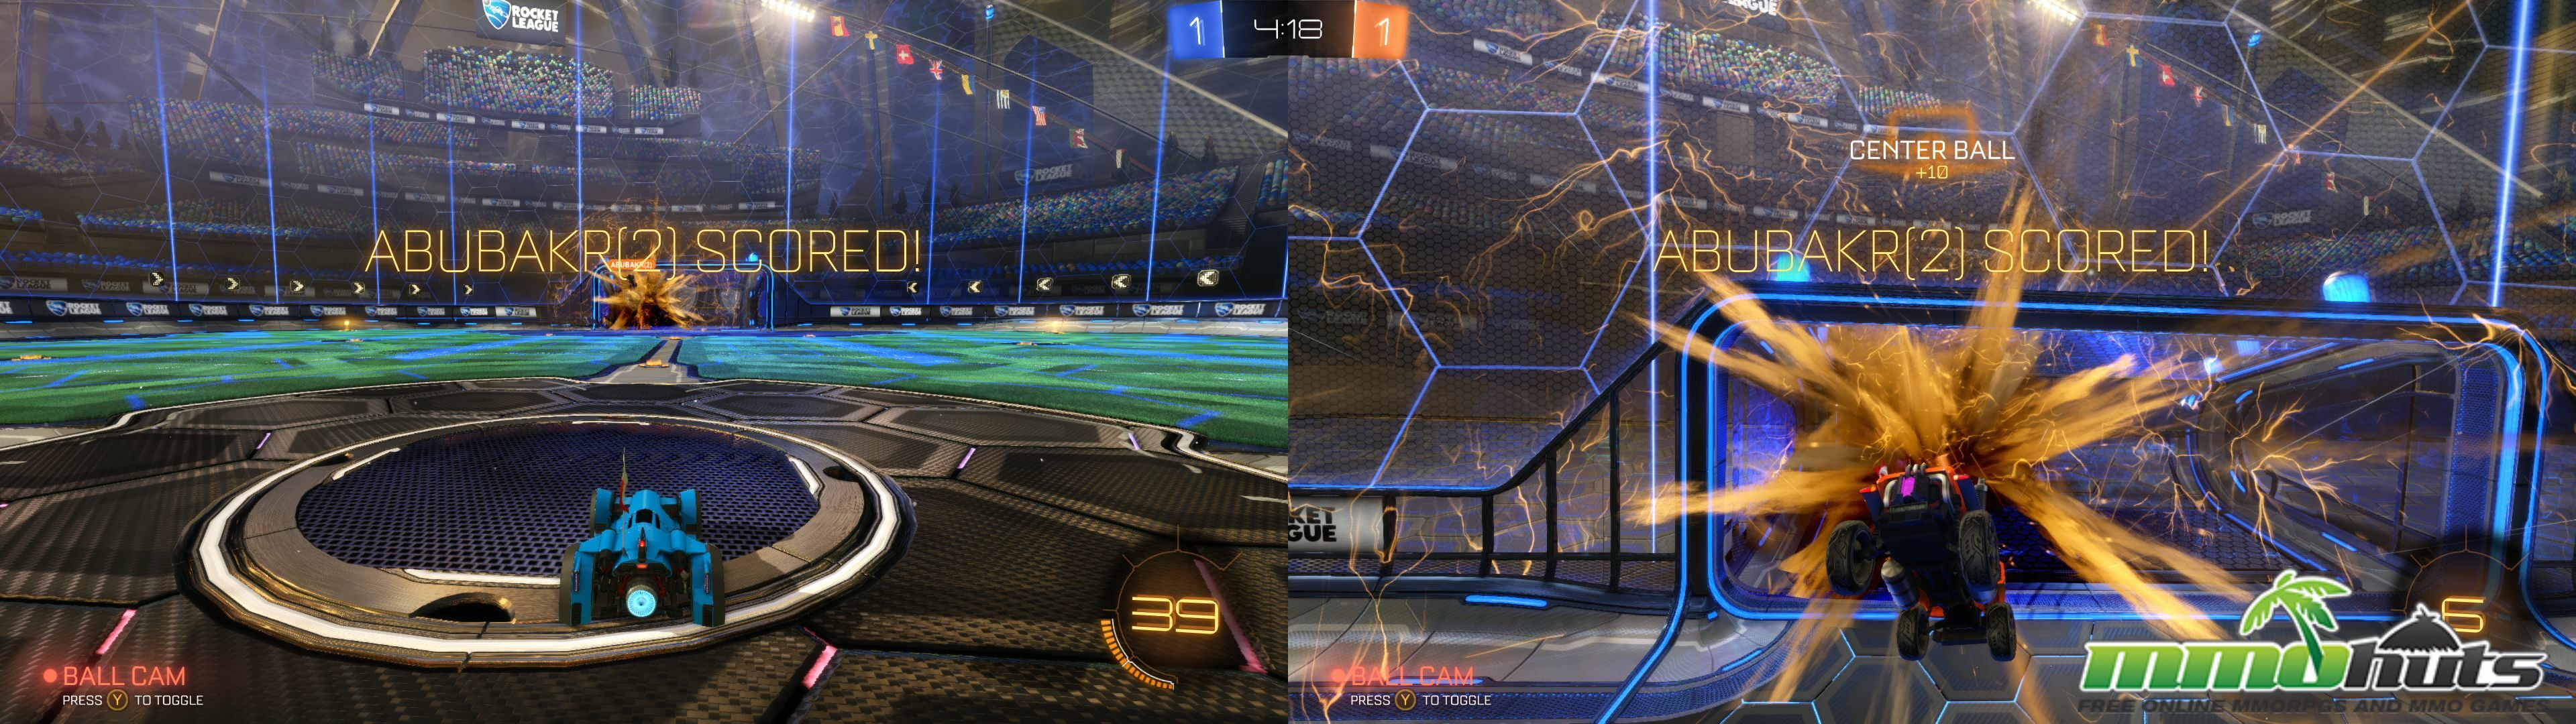 Rocket League Review (PC Launch) | MMOHuts